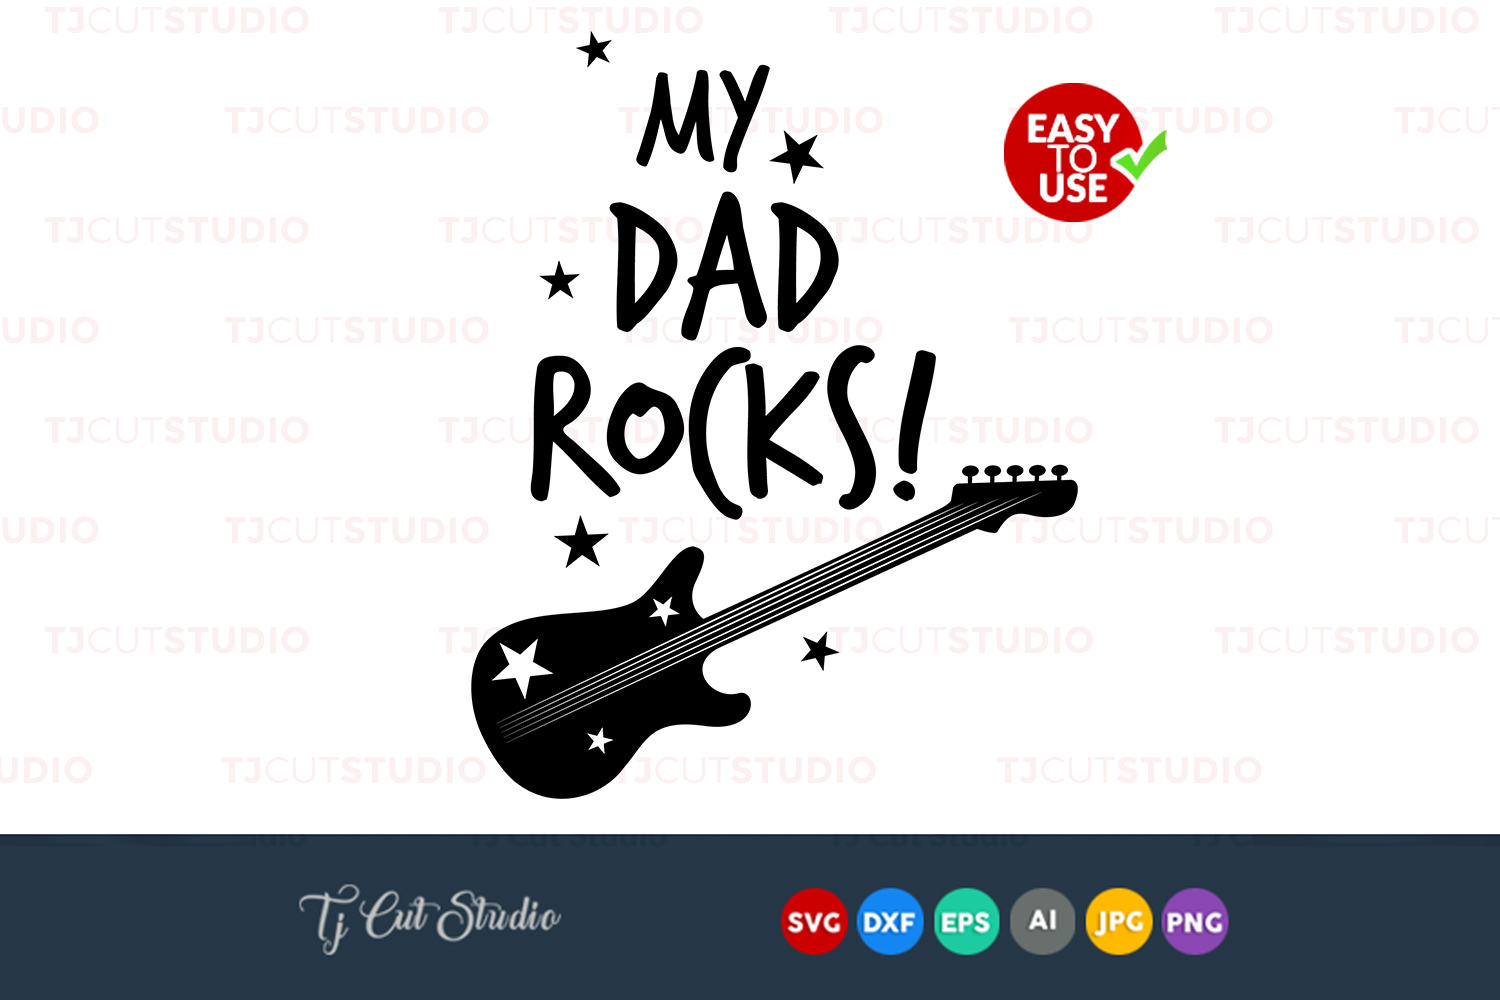 My dad rocks svg, my dad rocks, quote svg, Files for Silhouette Cameo or Cricut, Commercial & Personal Use. example image 1